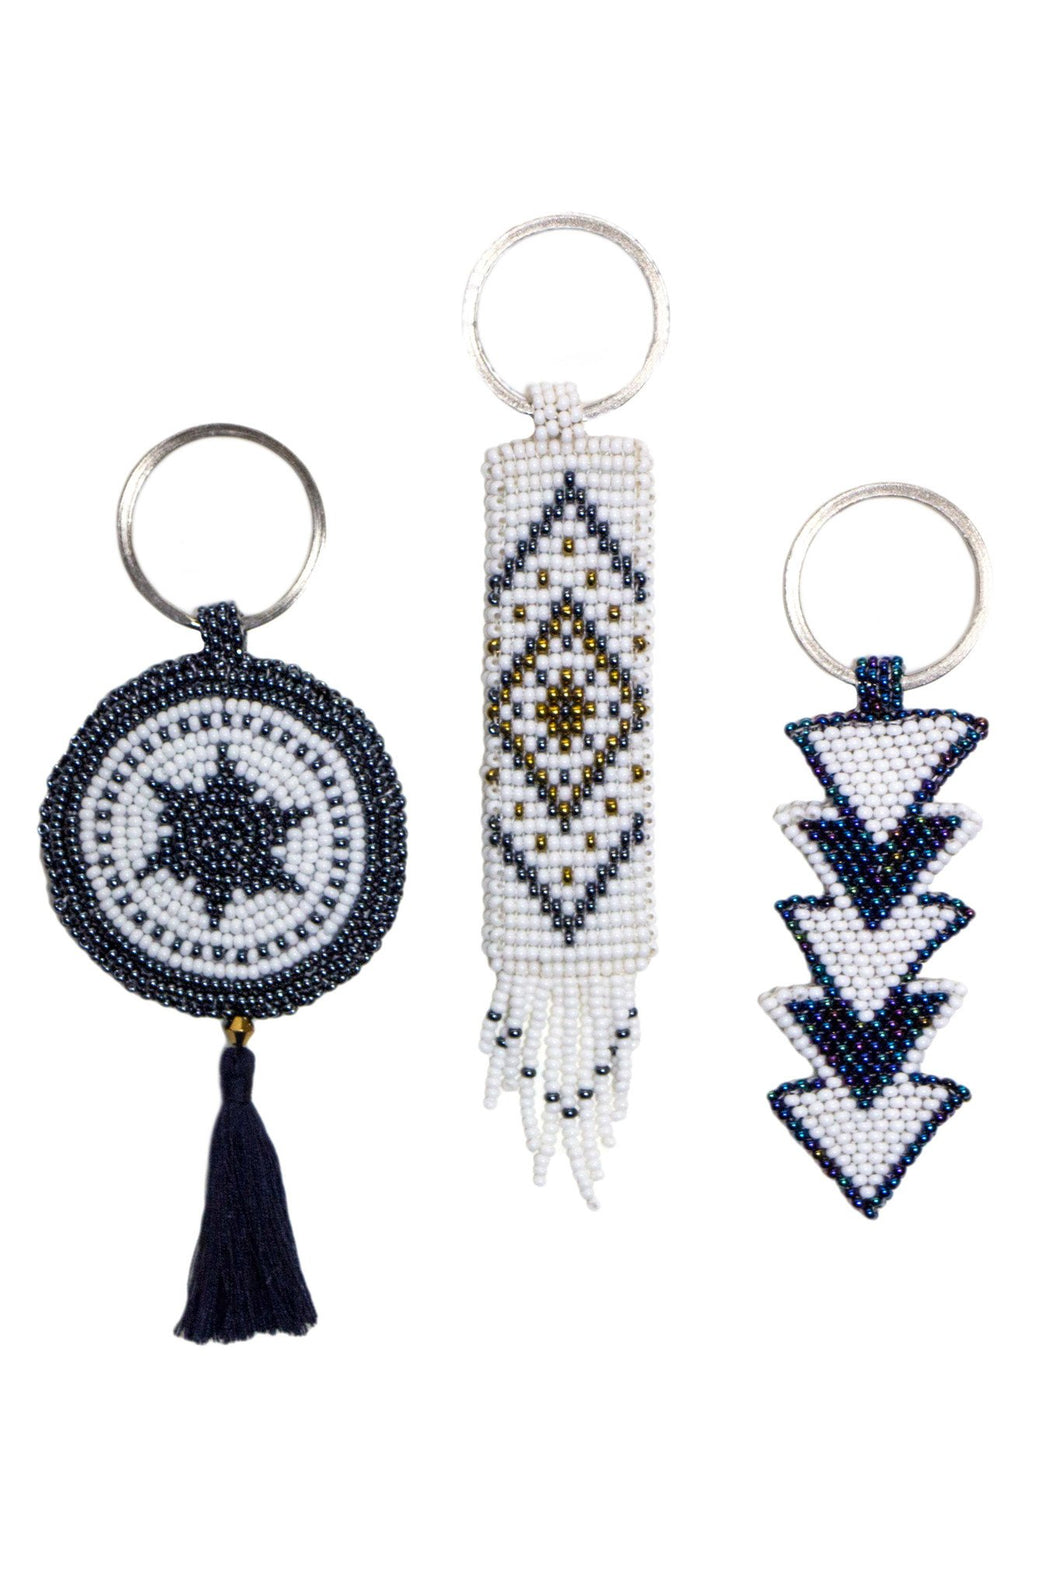 Ixcan Beaded Key Holder